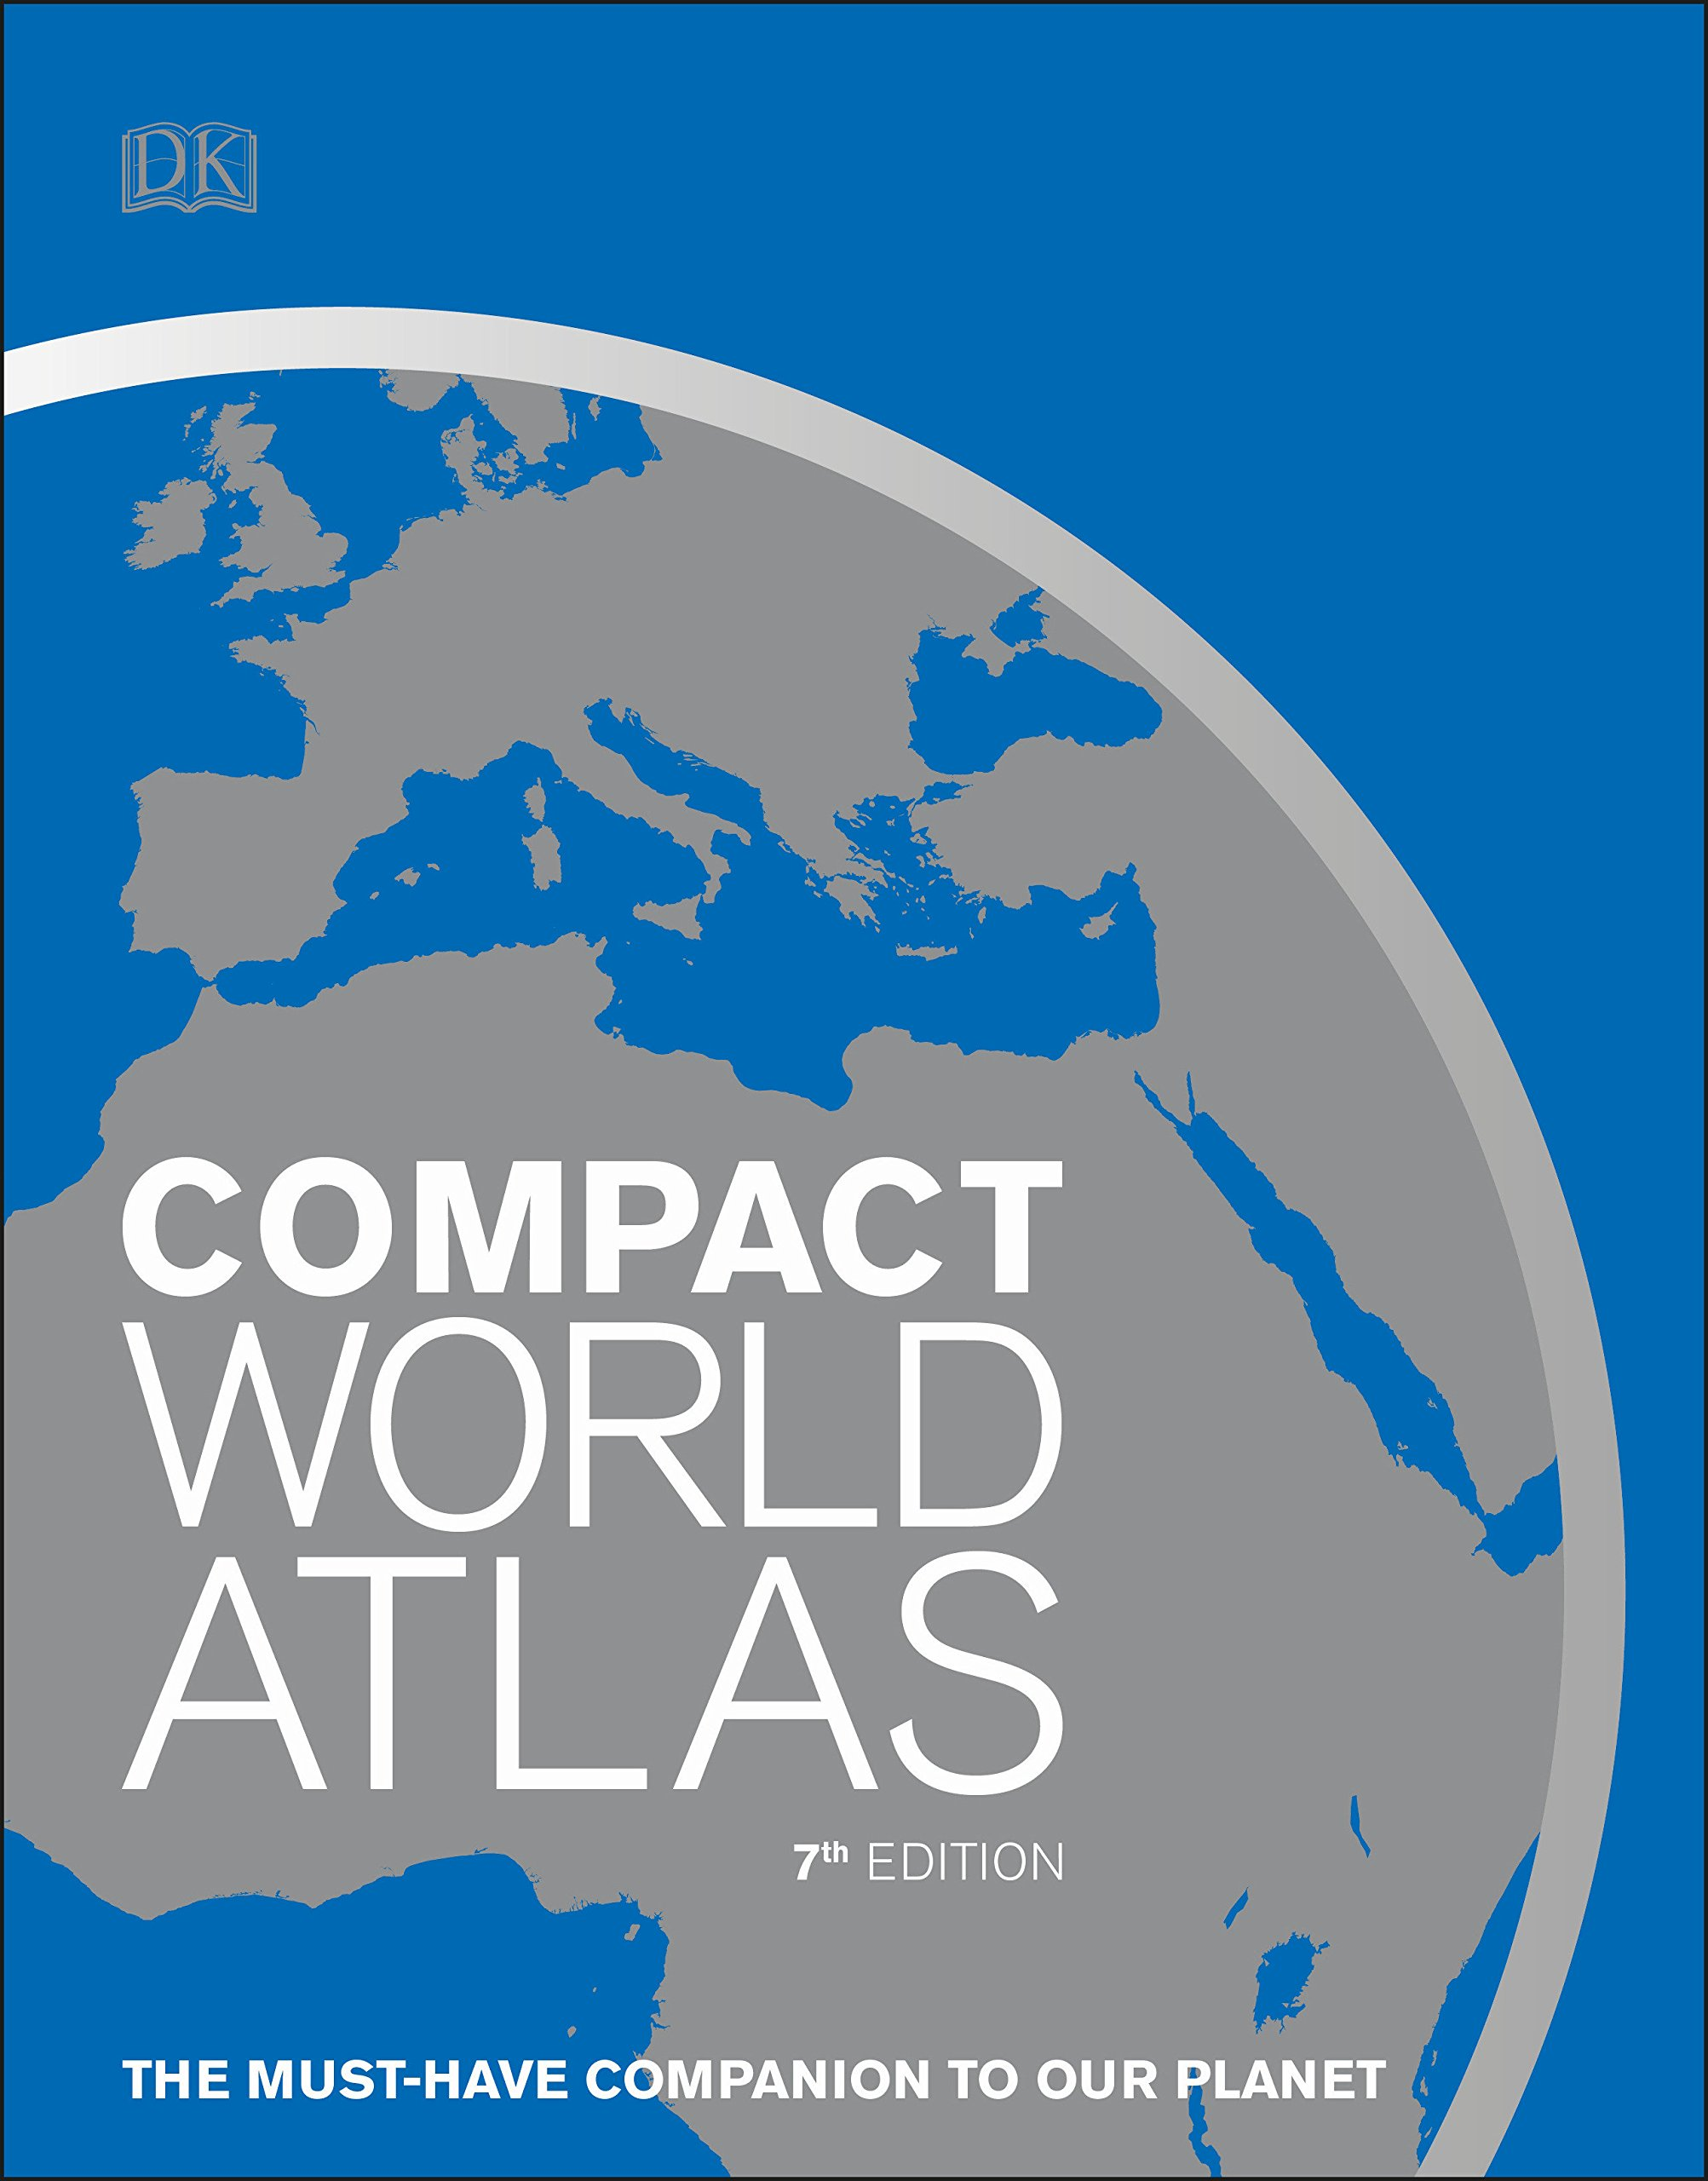 Compact World Atlas, 7th Edition by DK